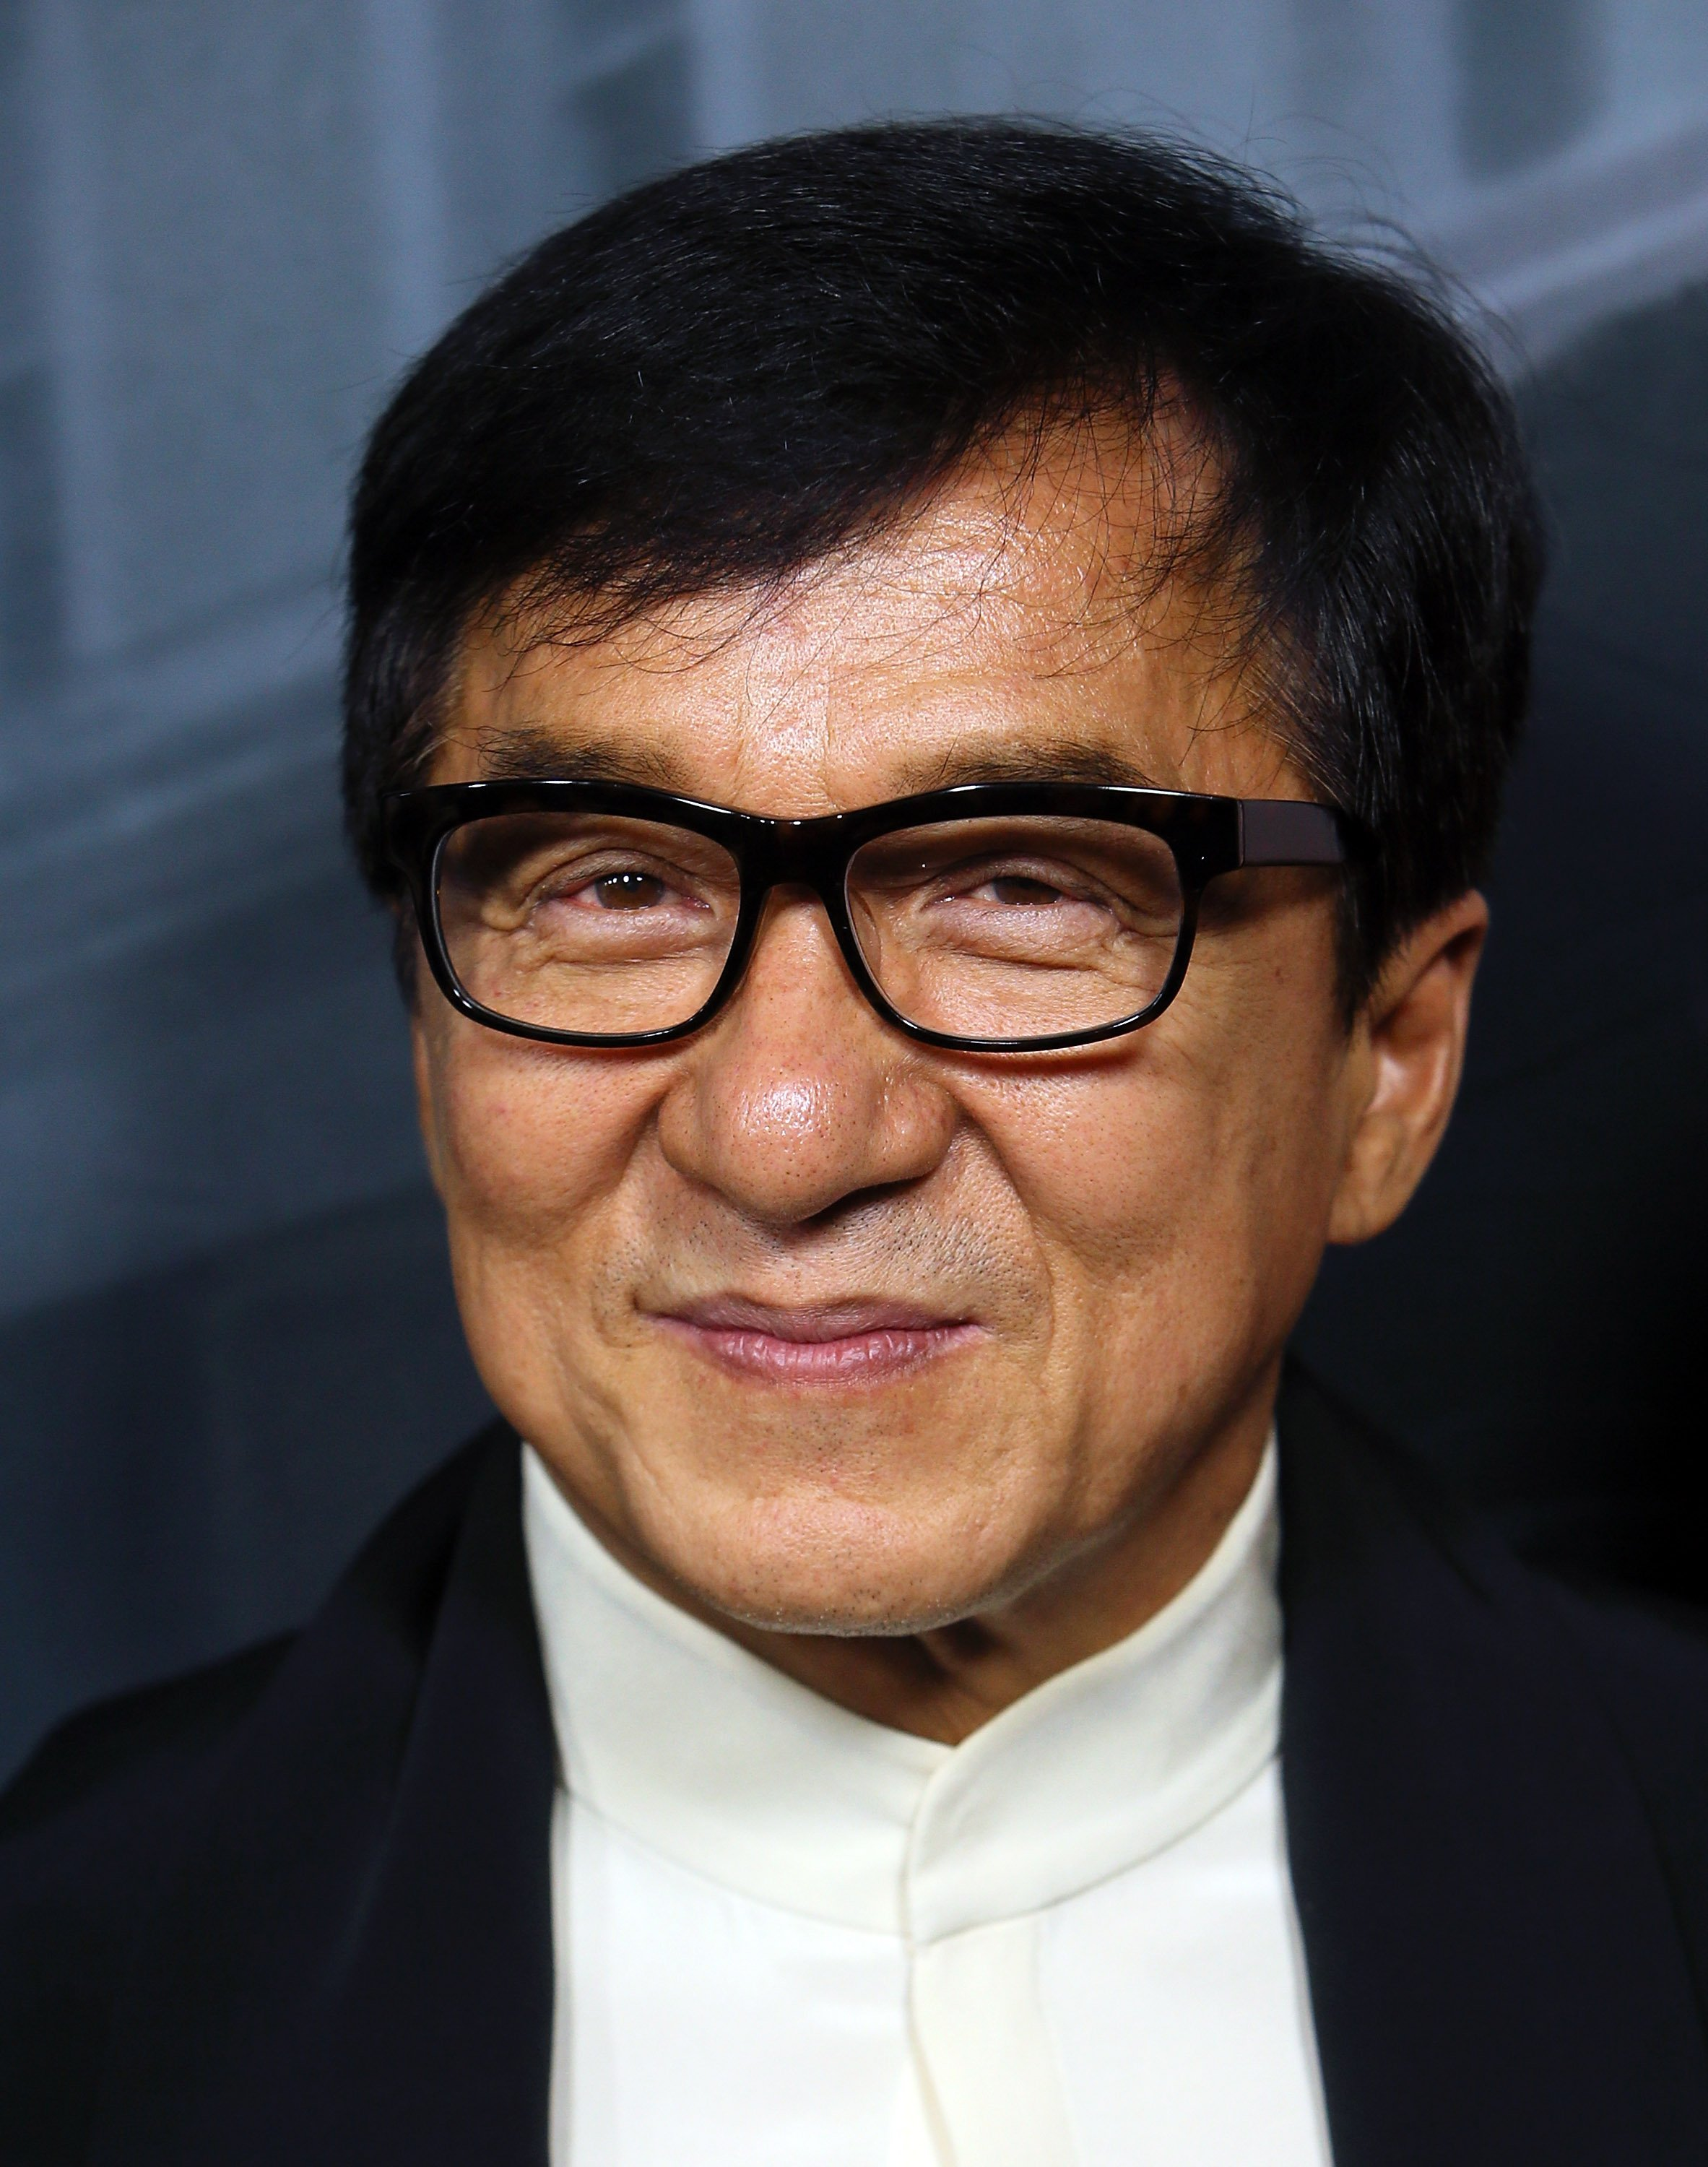 Image Source: Getty Images/A photo of Jackie Chan